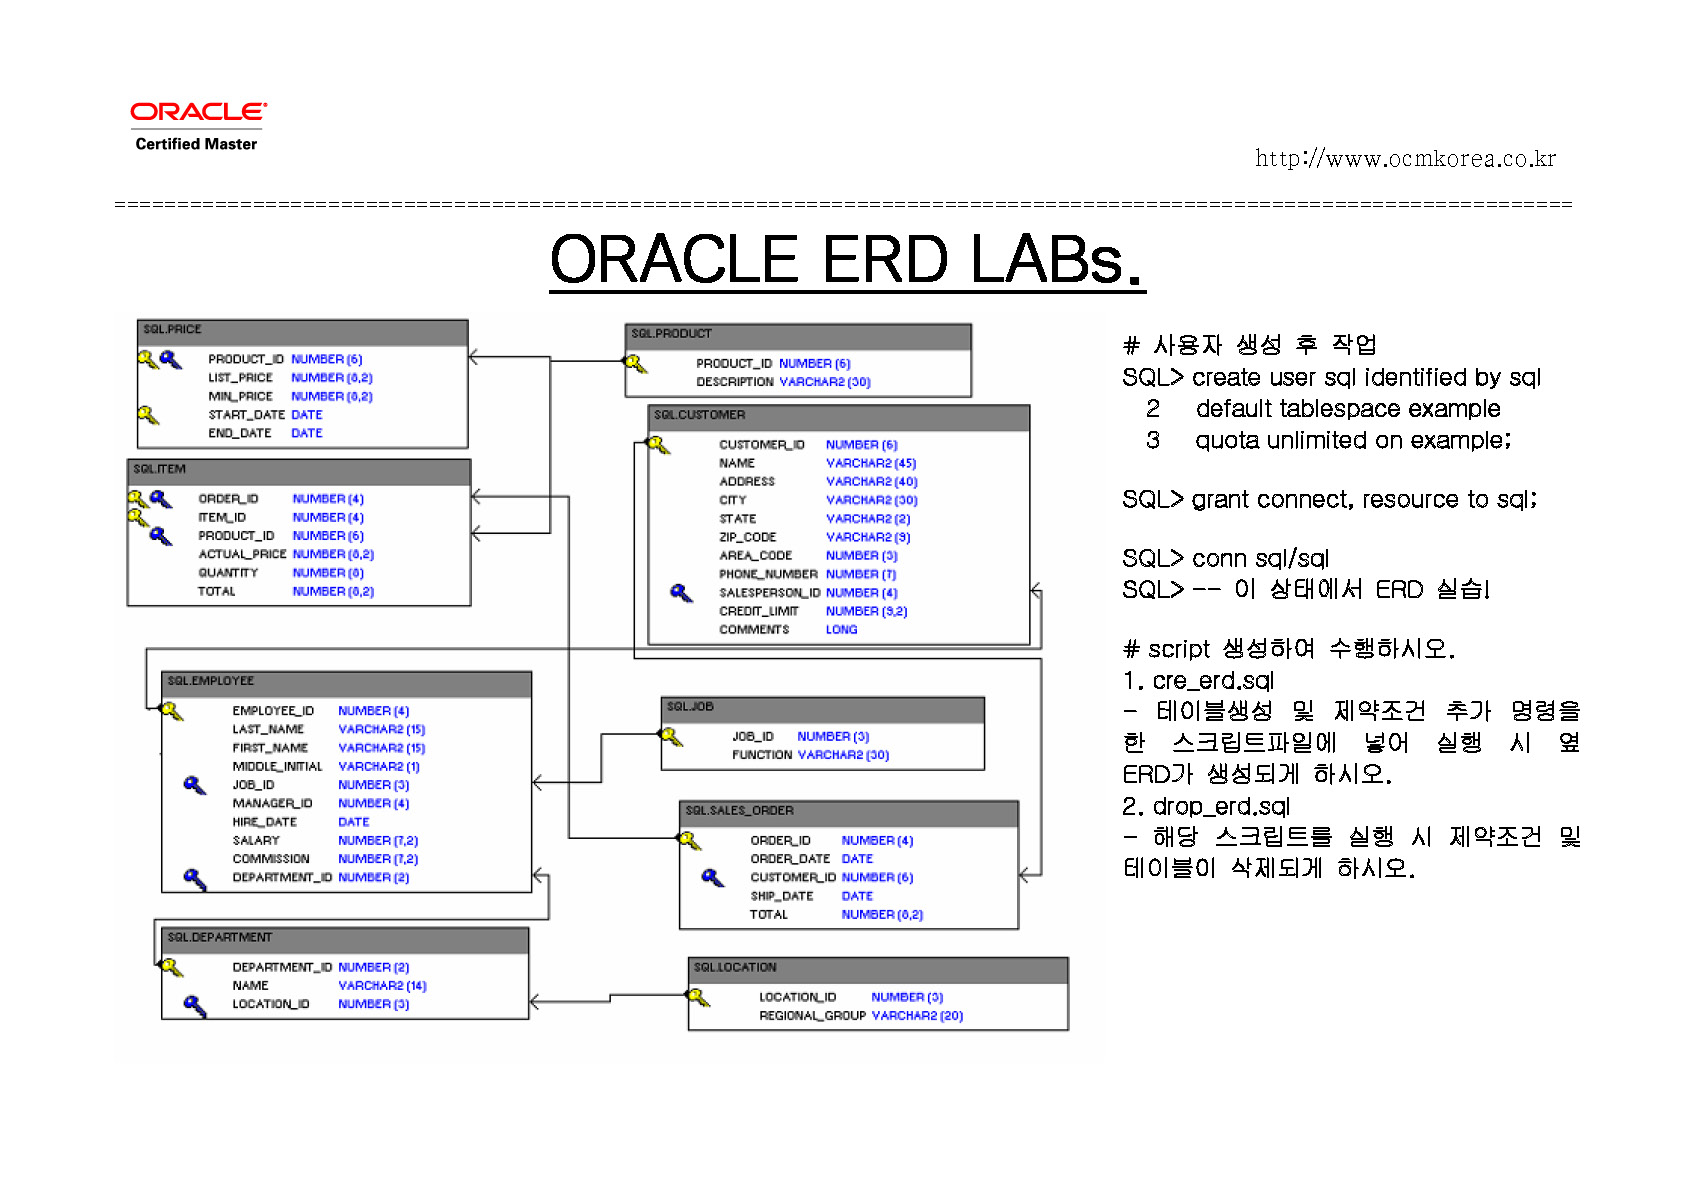 OCM10gR2 :: ORACLE ERD Labs